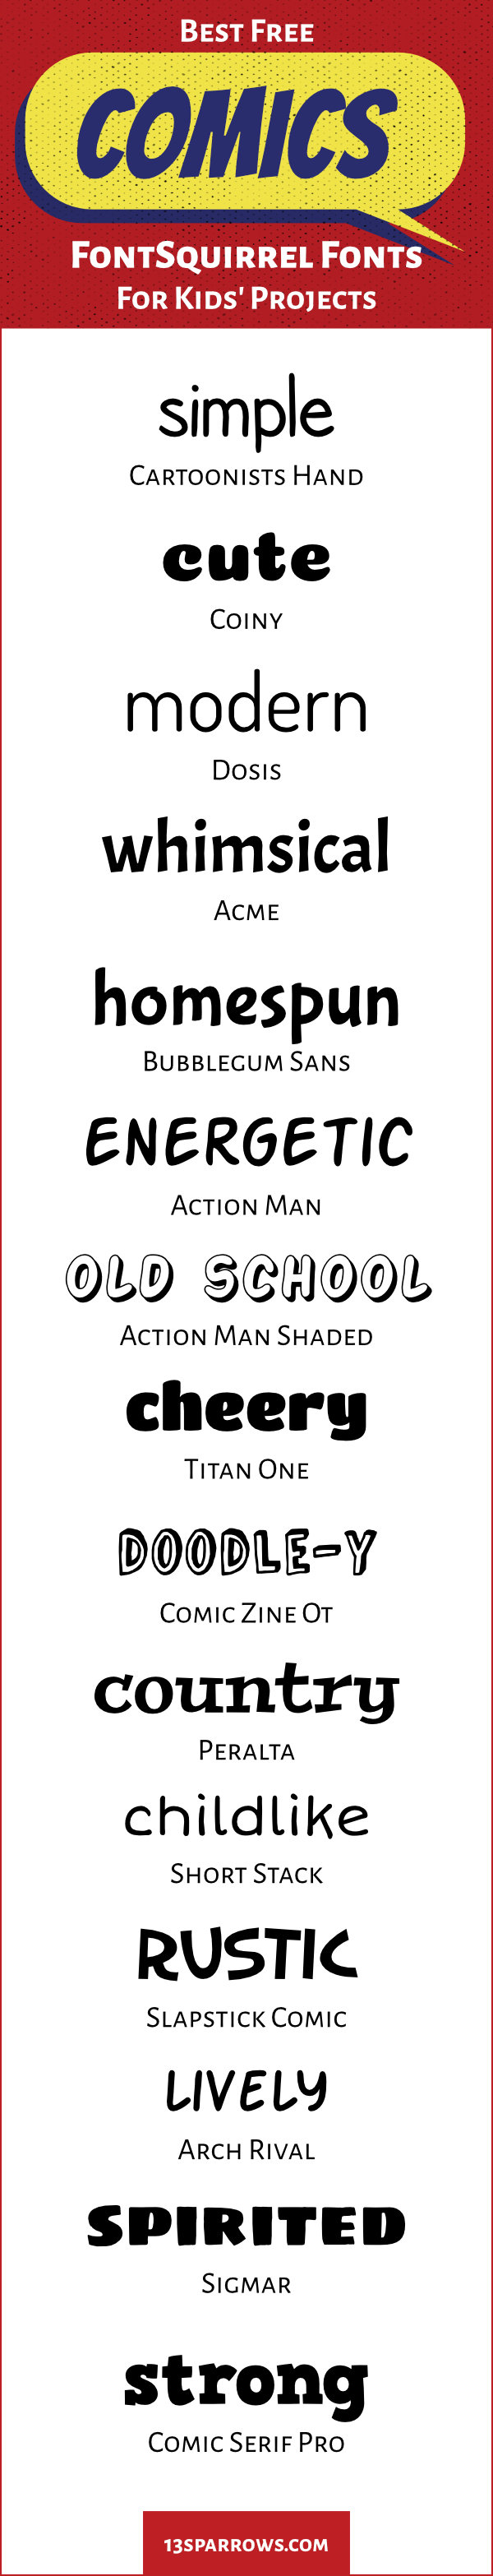 Use these fun, free, handwritten fonts for comics projects for kids. Download them on fontsquirrel.com.